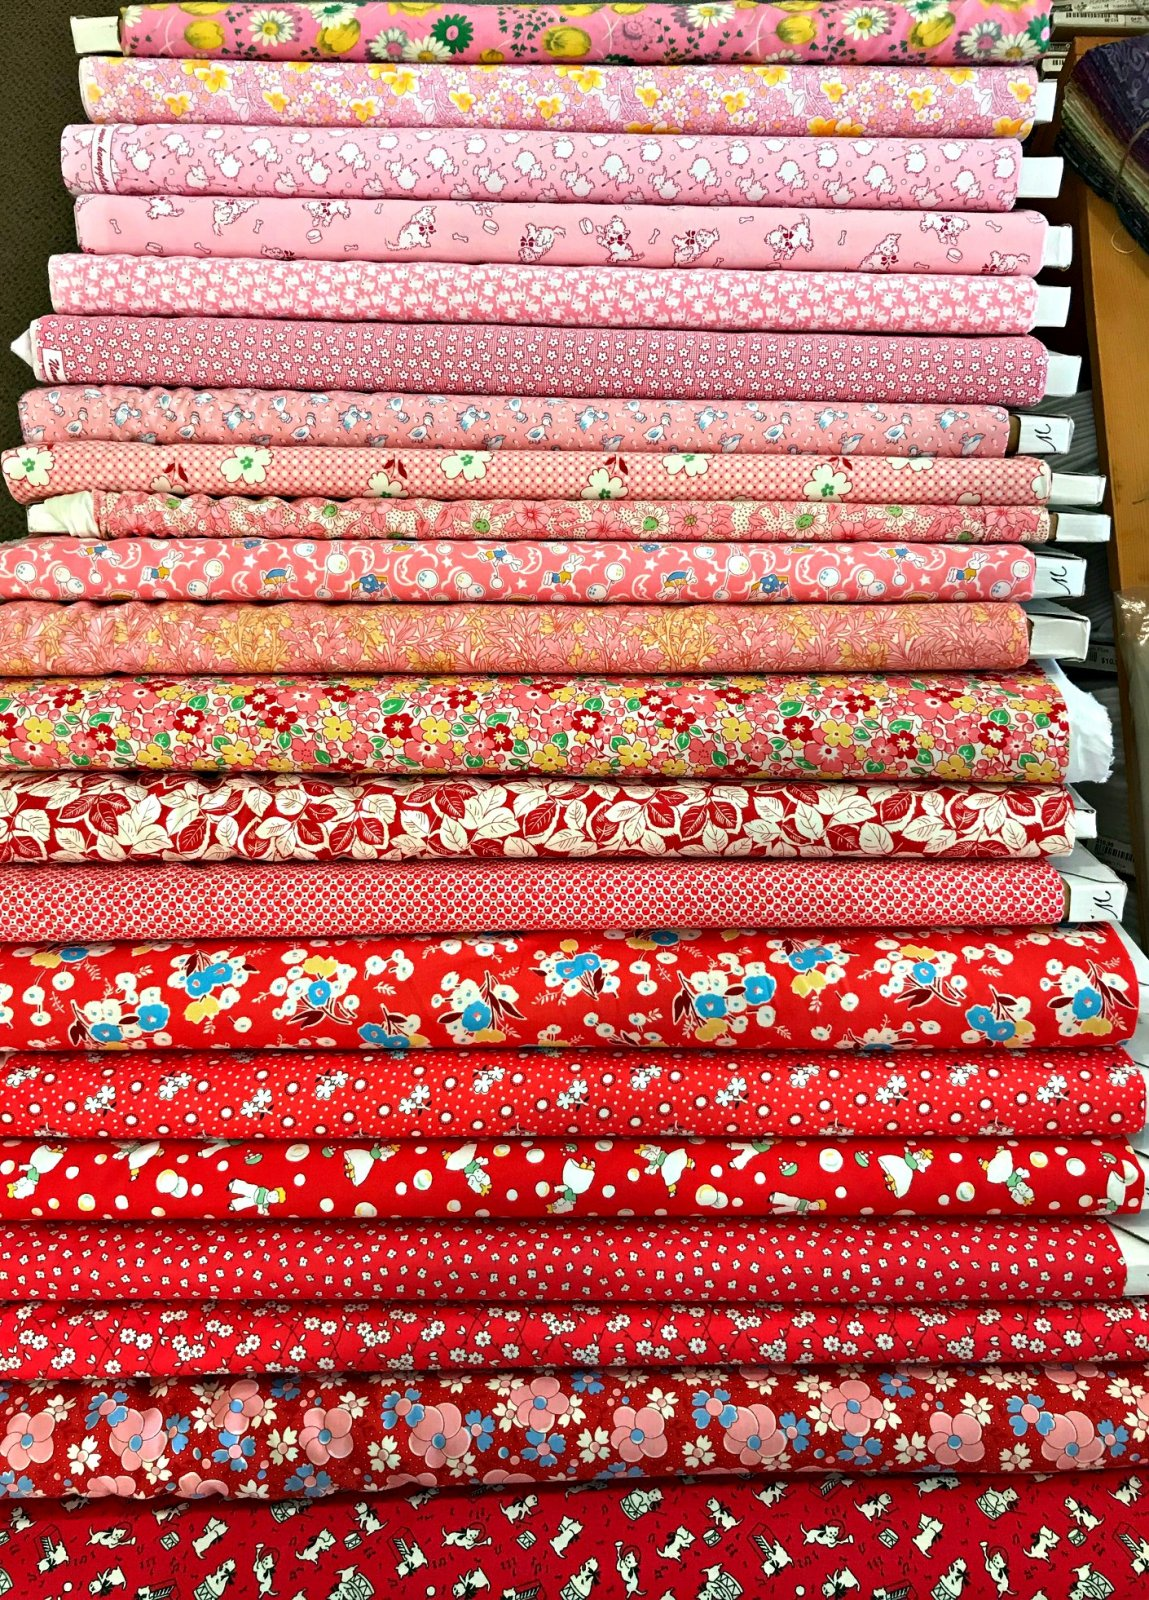 Red & Pink Reproduction - 21 Fat Quarters